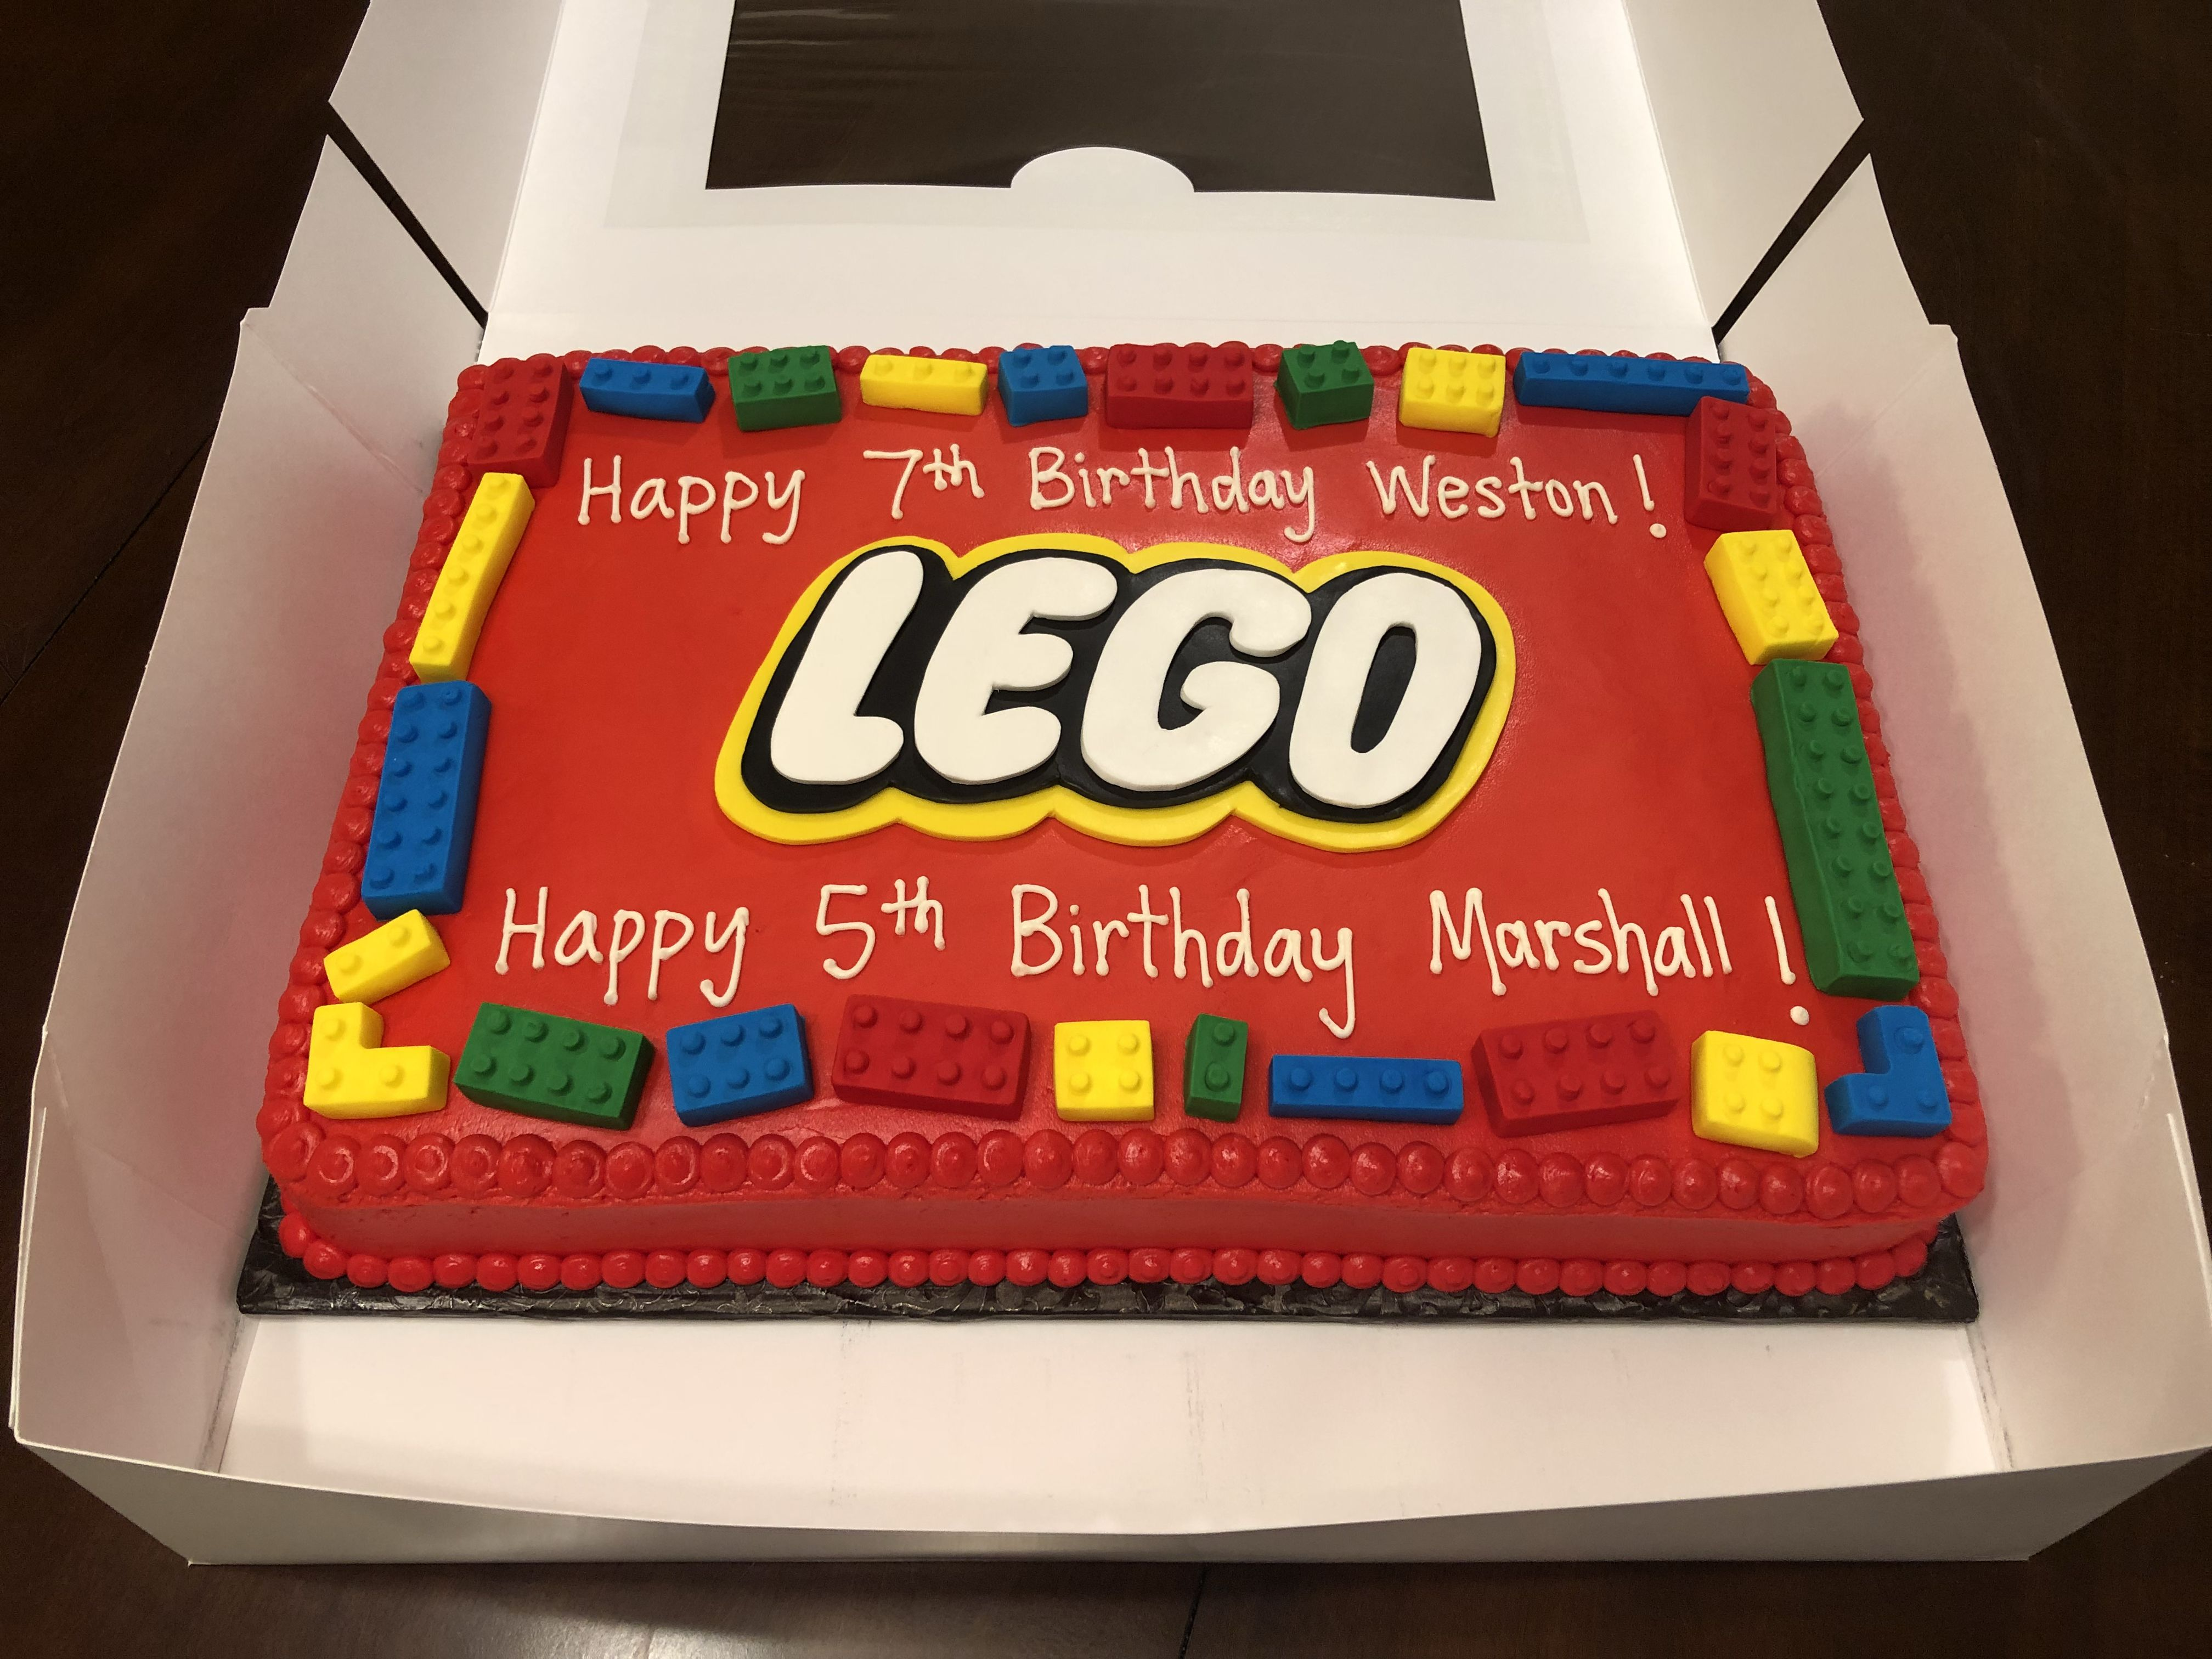 It S An Edible Lego Cake For Weston And Marshall S Birthday